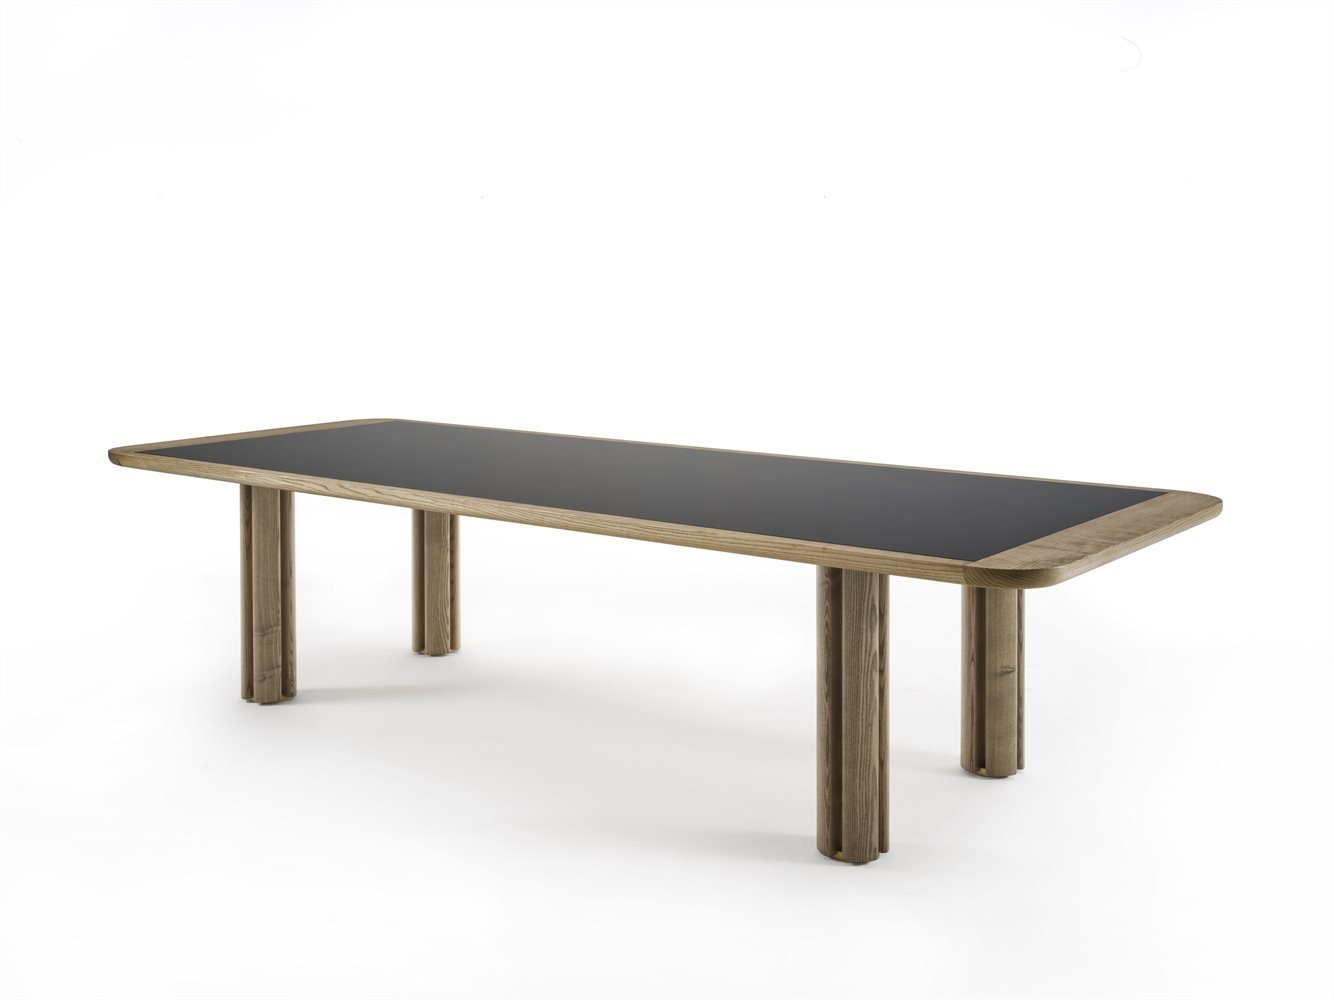 Quadrifoglio Dining Table from Porada